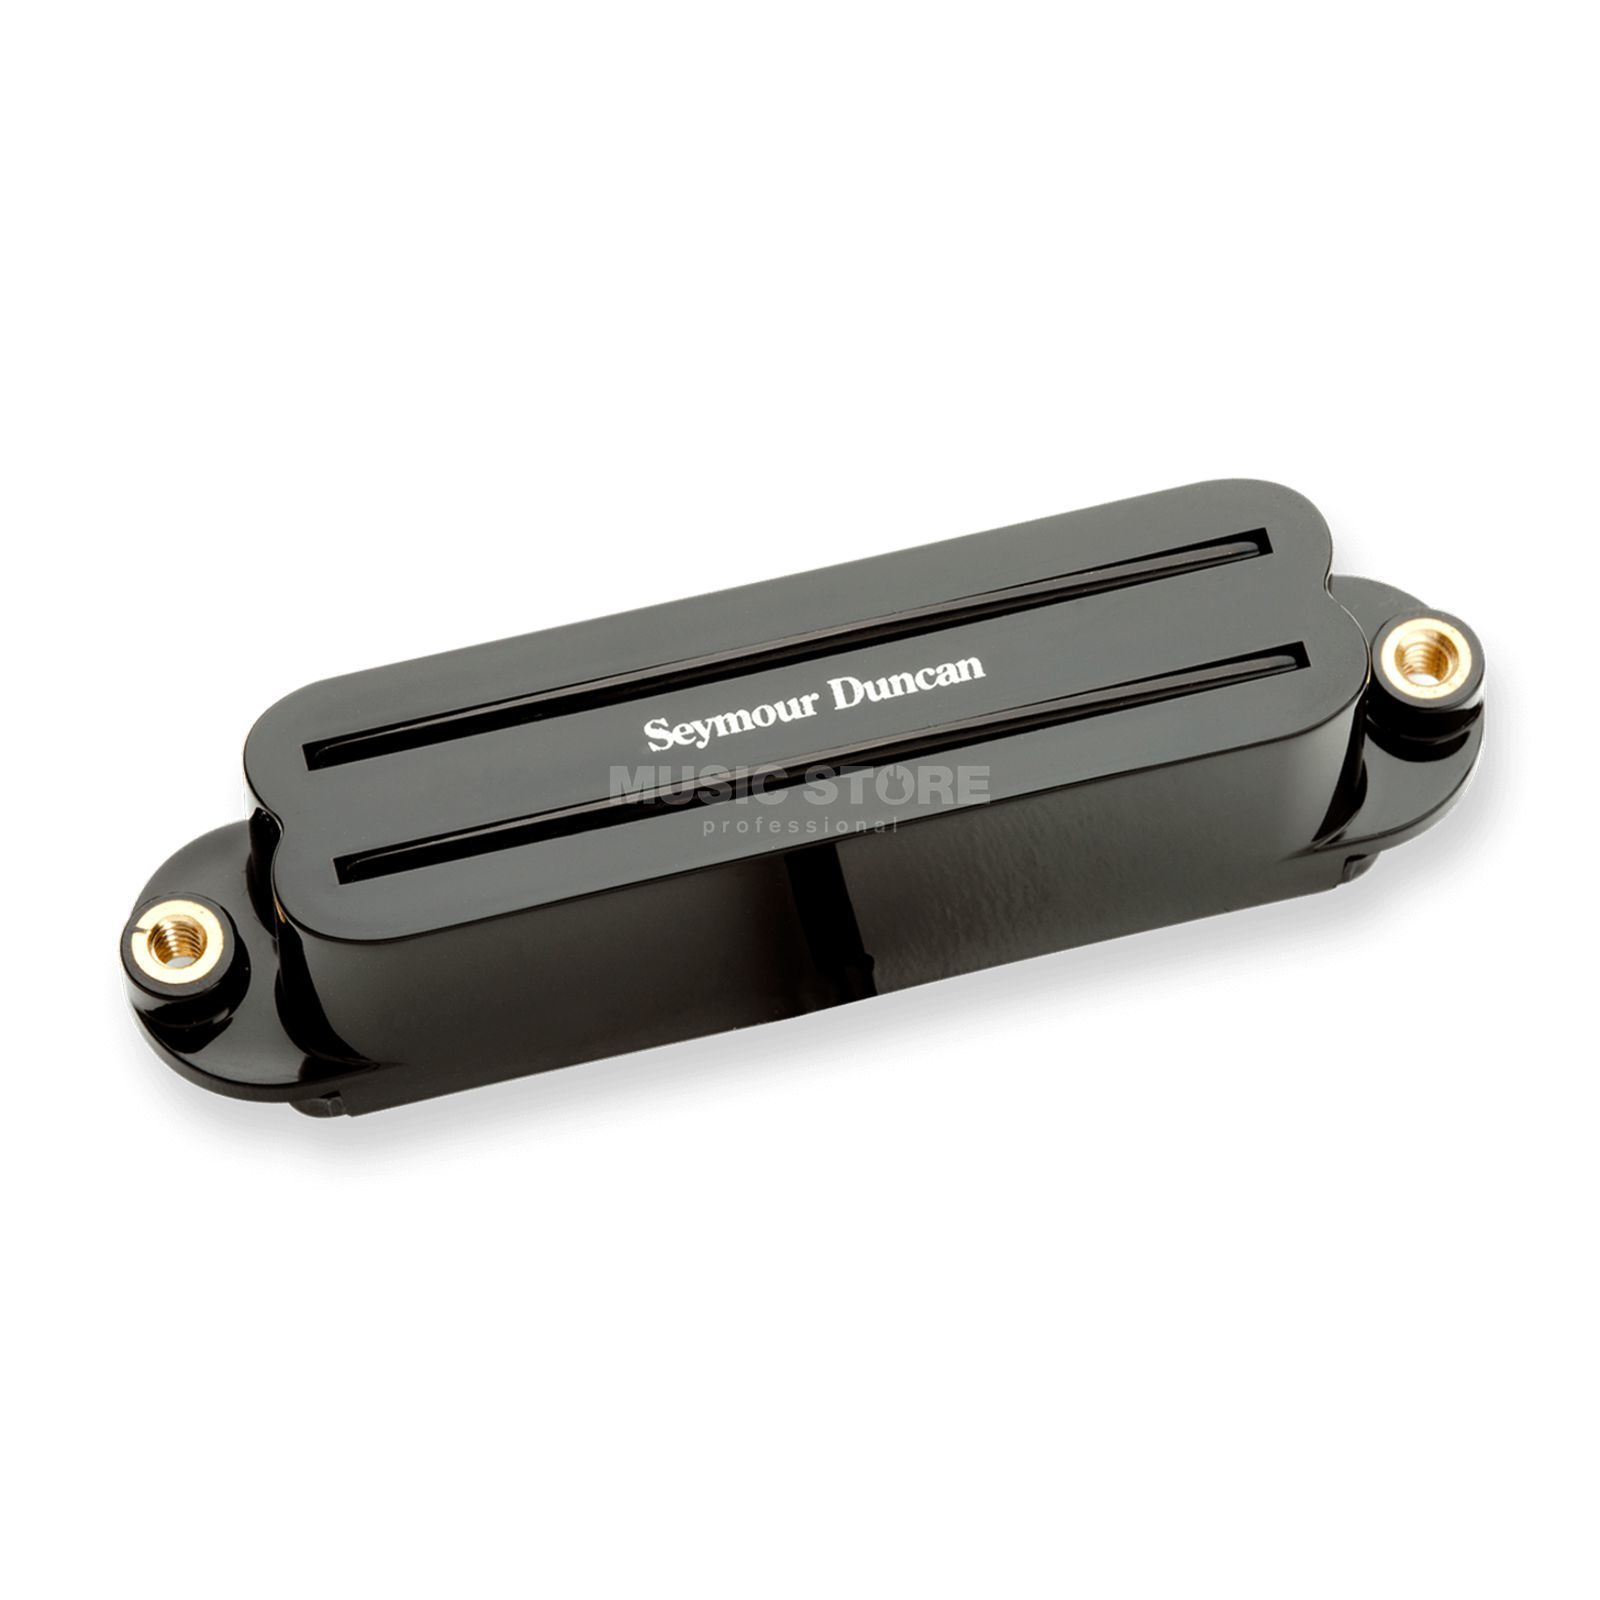 Seymour Duncan Strat Cool Rail Bridge black 4-phase Imagem do produto